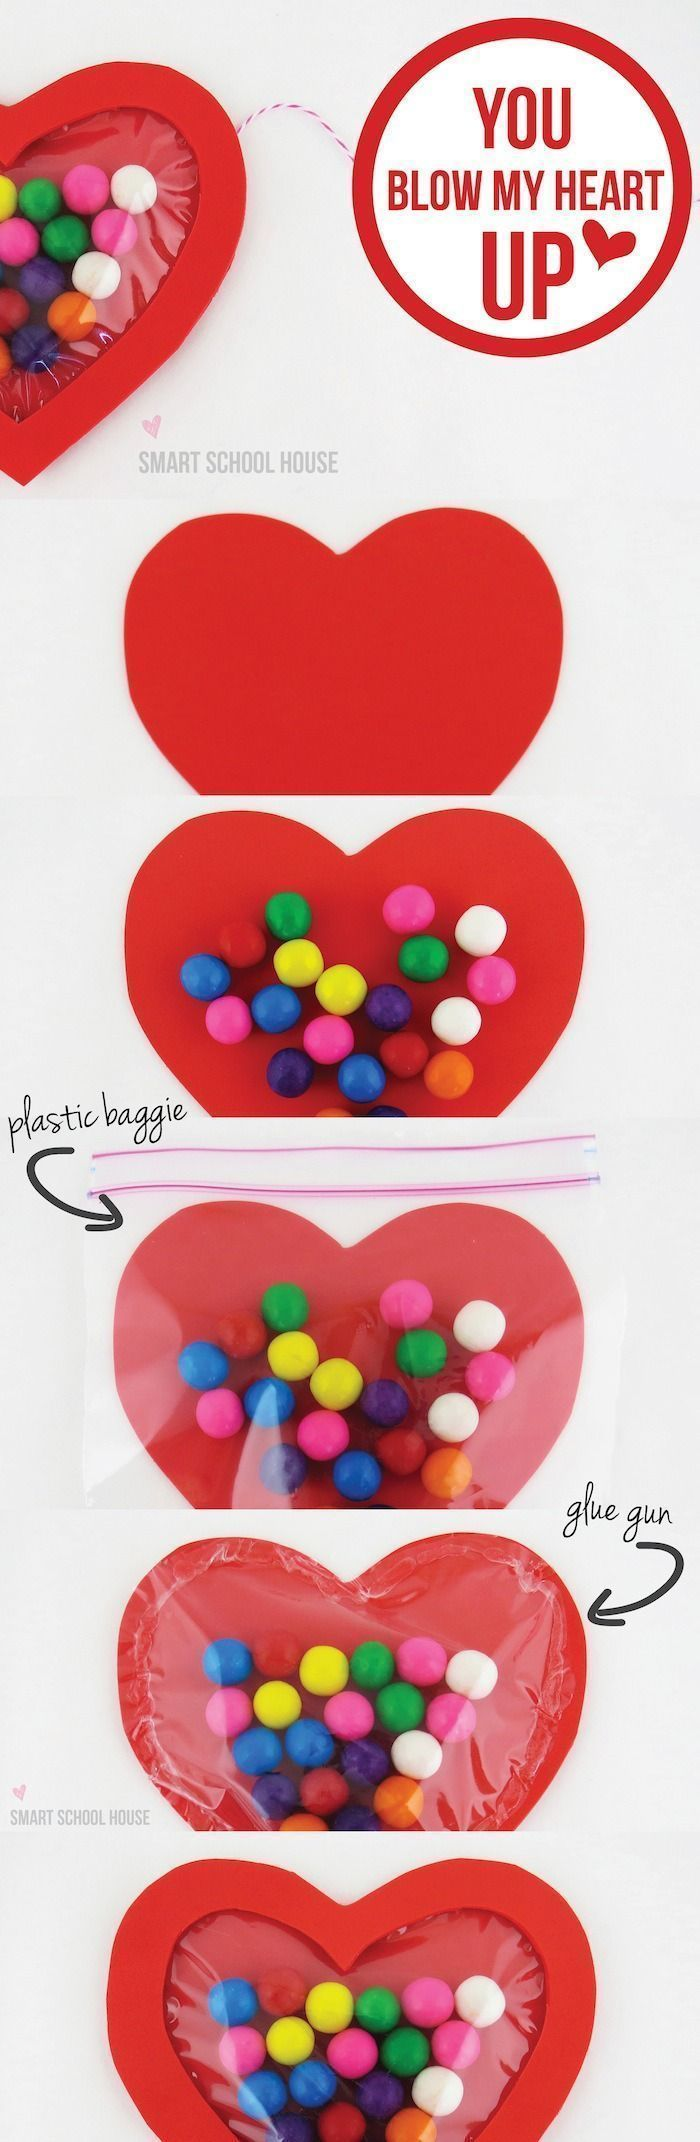 Free Craft Ideas For Kids Part - 16: BLOW MY HEART UP Bubble Gum Valentine Craft U0026 Free Printable. The Newest  And Funnest Valentine Craft Idea For Kids! Shared By Career Path Design.